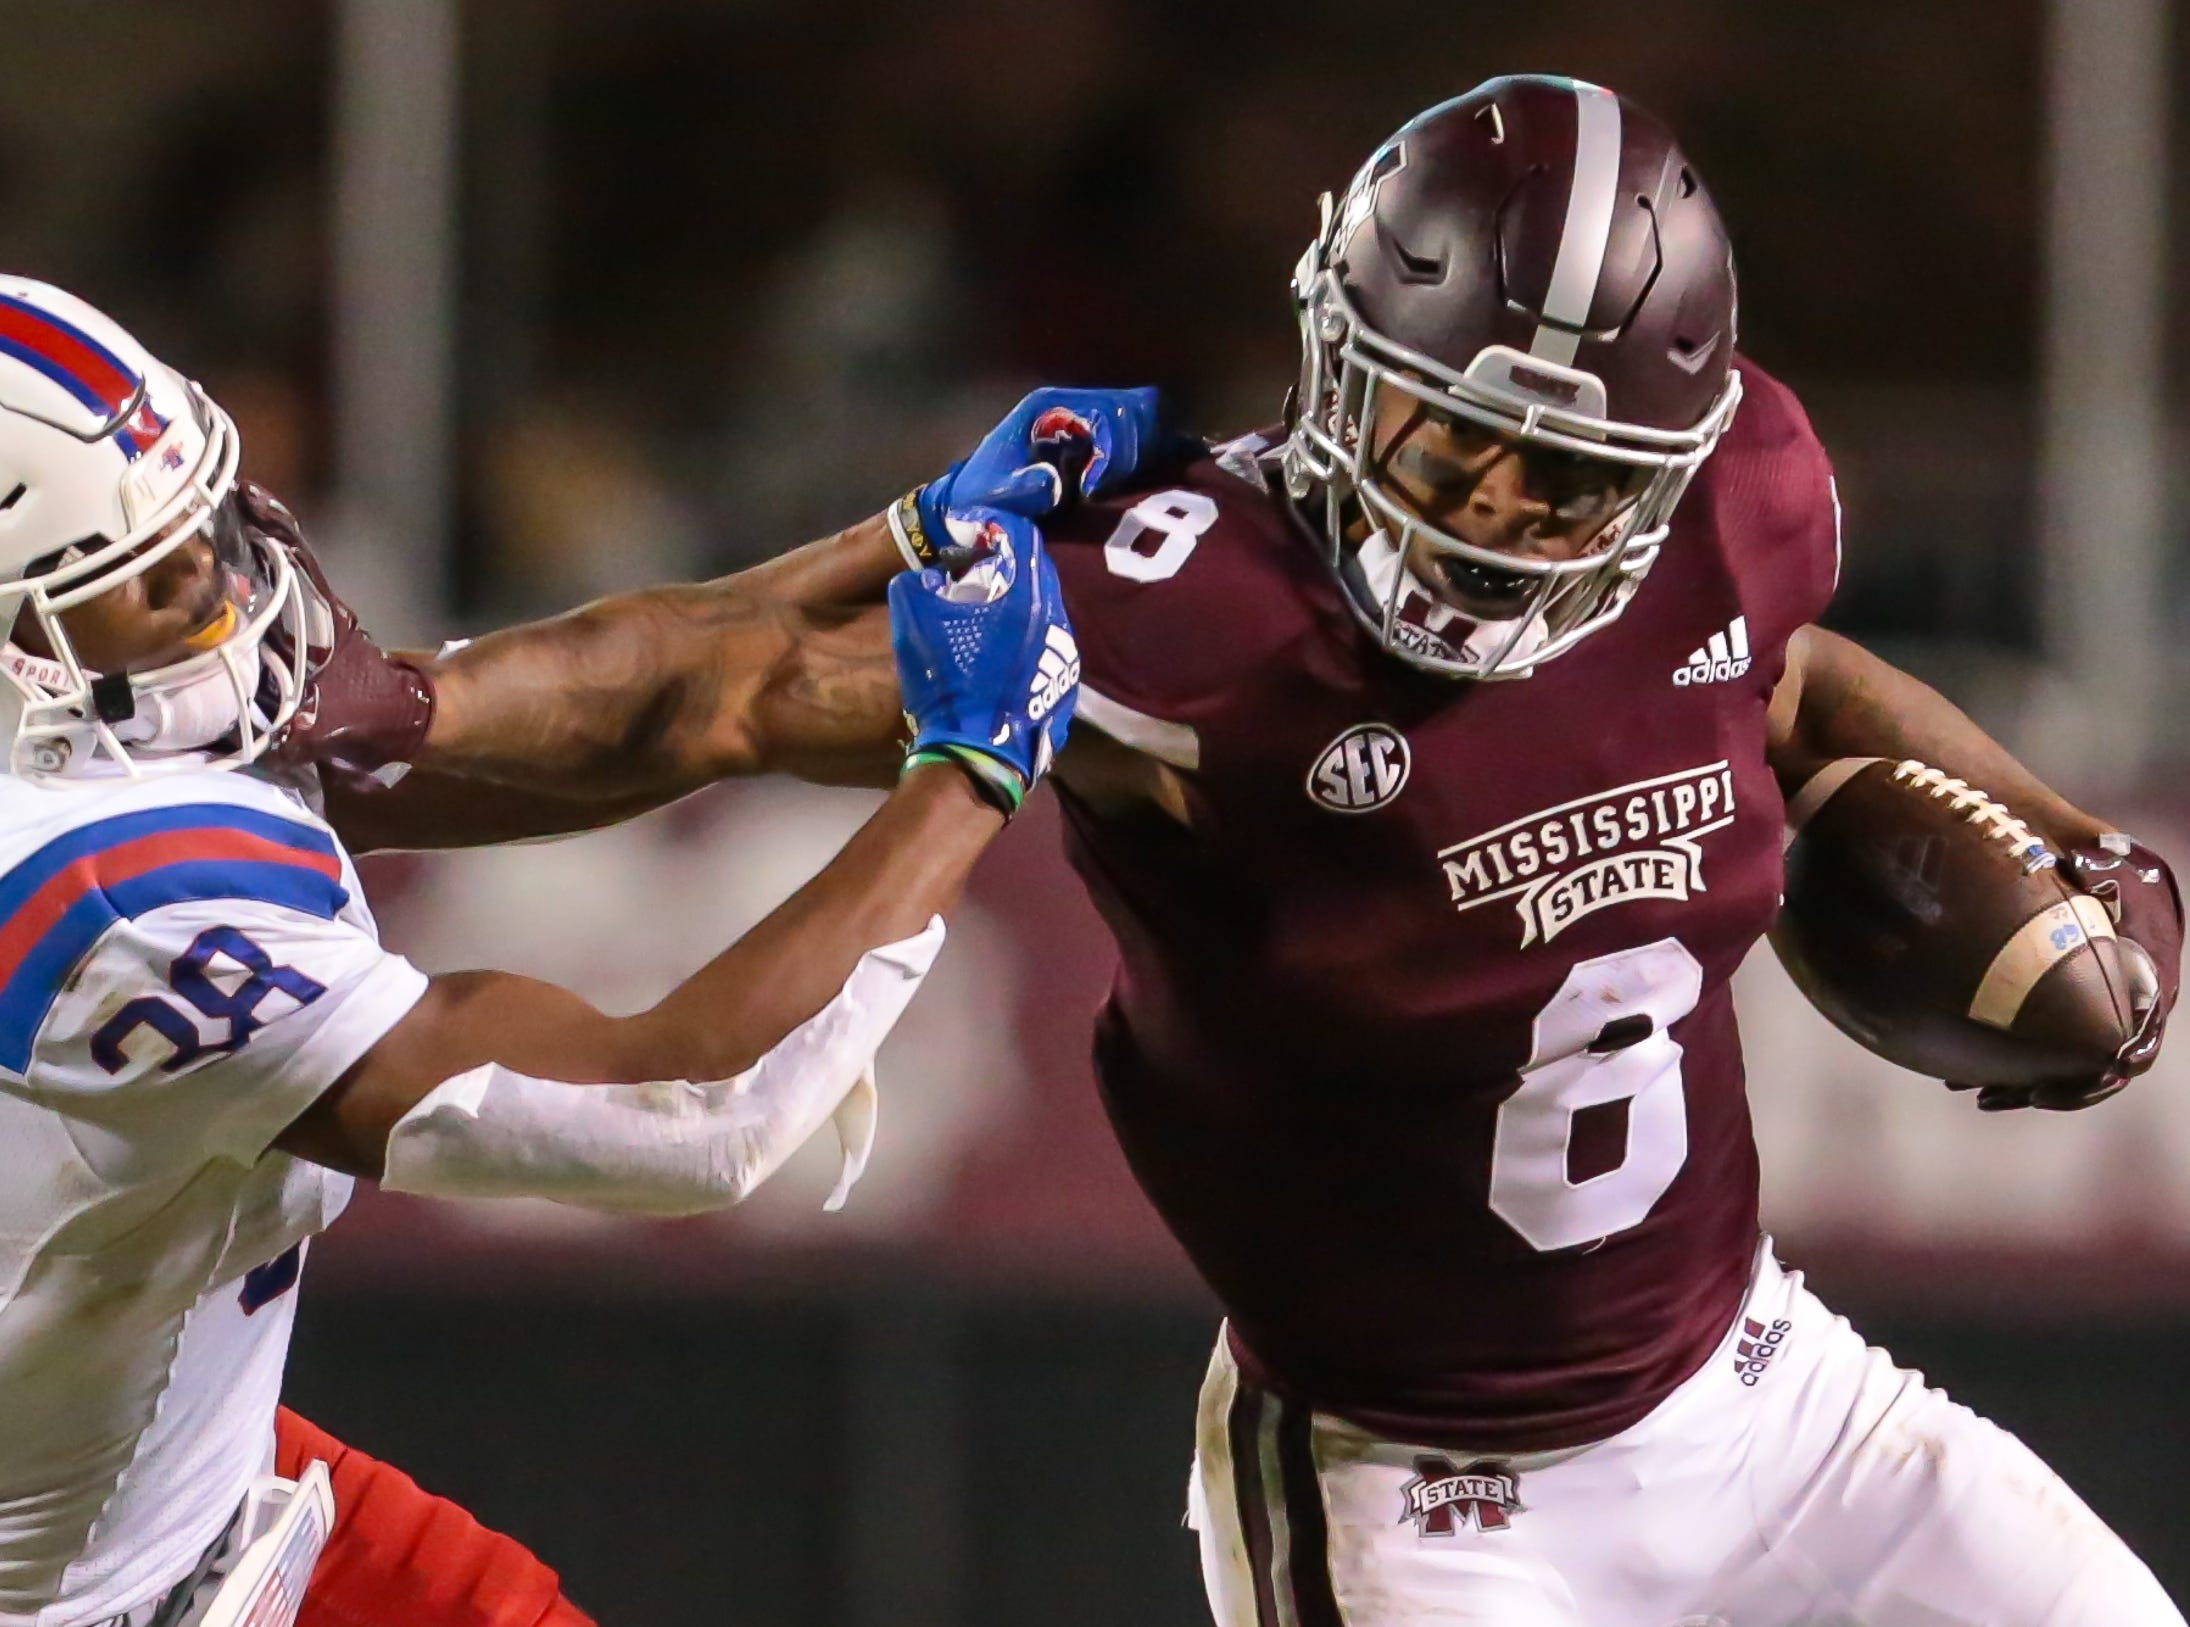 Mississippi State's Kylin Hill (8) tries to break away from Louisiana Tech's Terik Miller (38) in the second quarter. Mississippi State and Louisiana Tech played in a college football game on Saturday, November 3, 2018, in Starkville. Photo by Keith Warren/Madatory Photo Credit